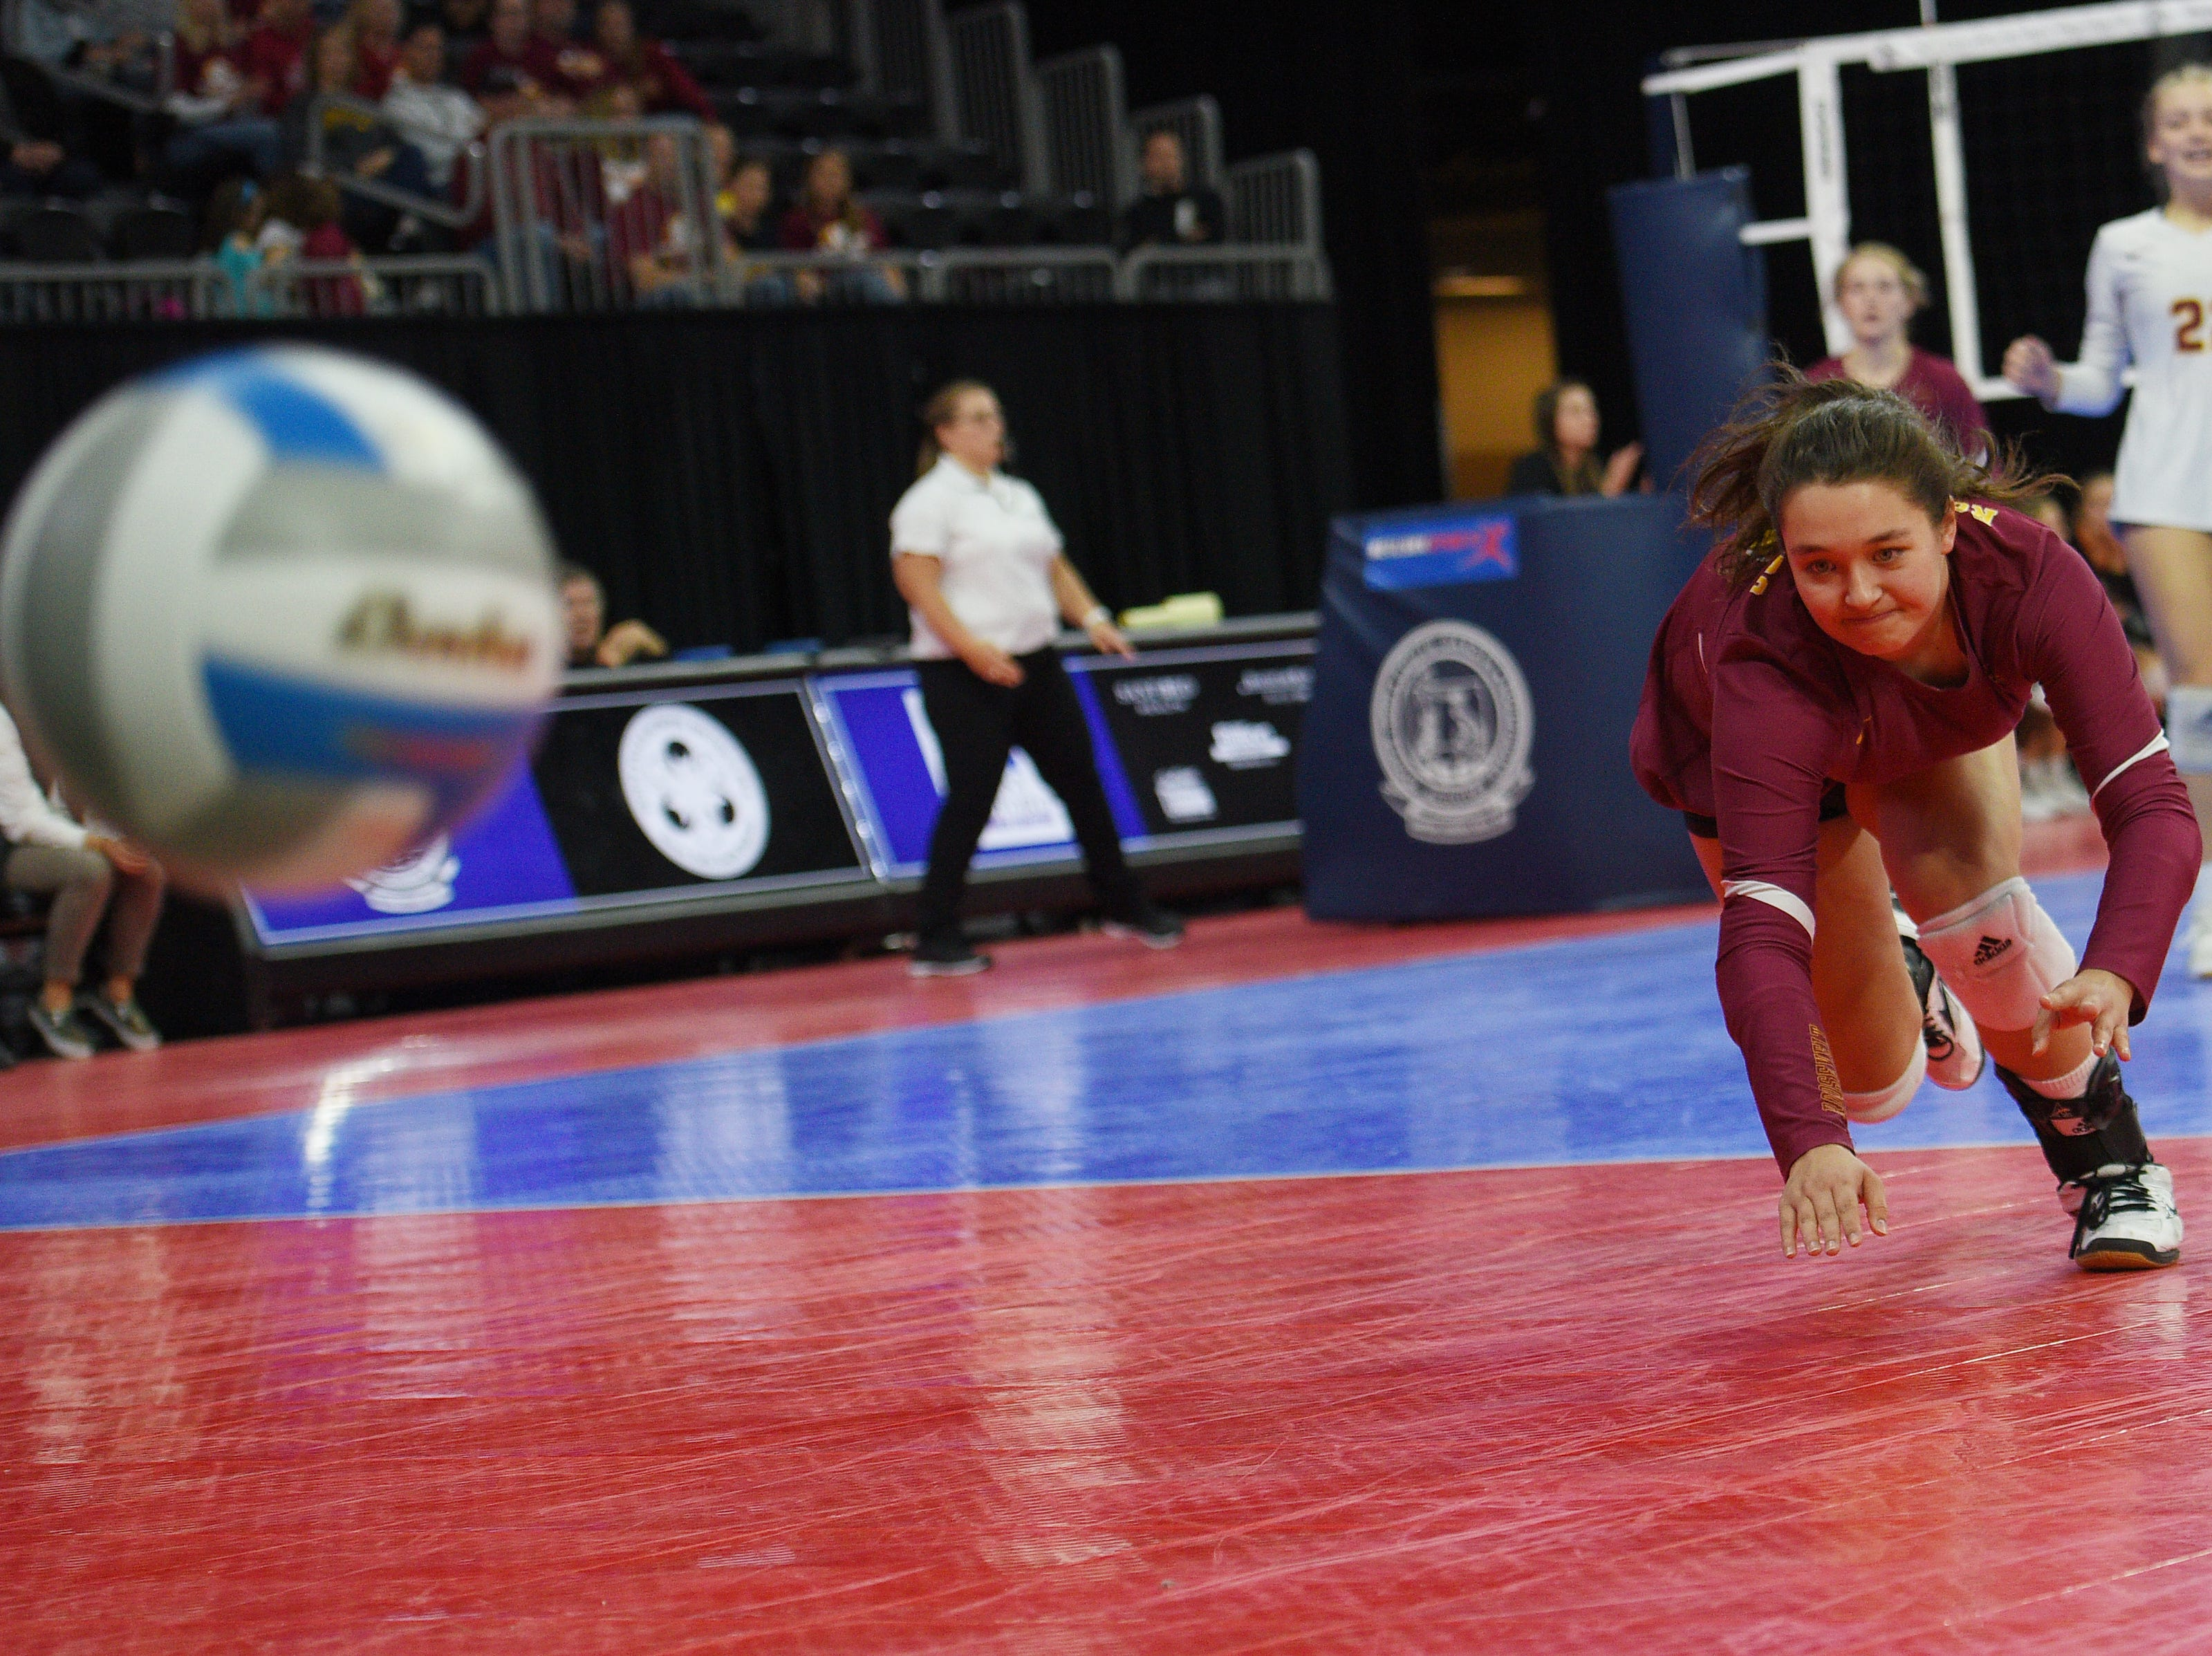 Roosevelt's Marisa Beintema dives for the ball during the game against Washington in the AA quarterfinals Thursday, Nov. 15, at the Denny Sanford Premier Center in Sioux Falls.